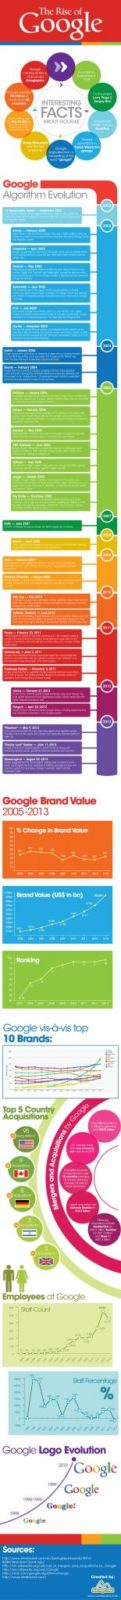 The Rise Of Google [Infographic]